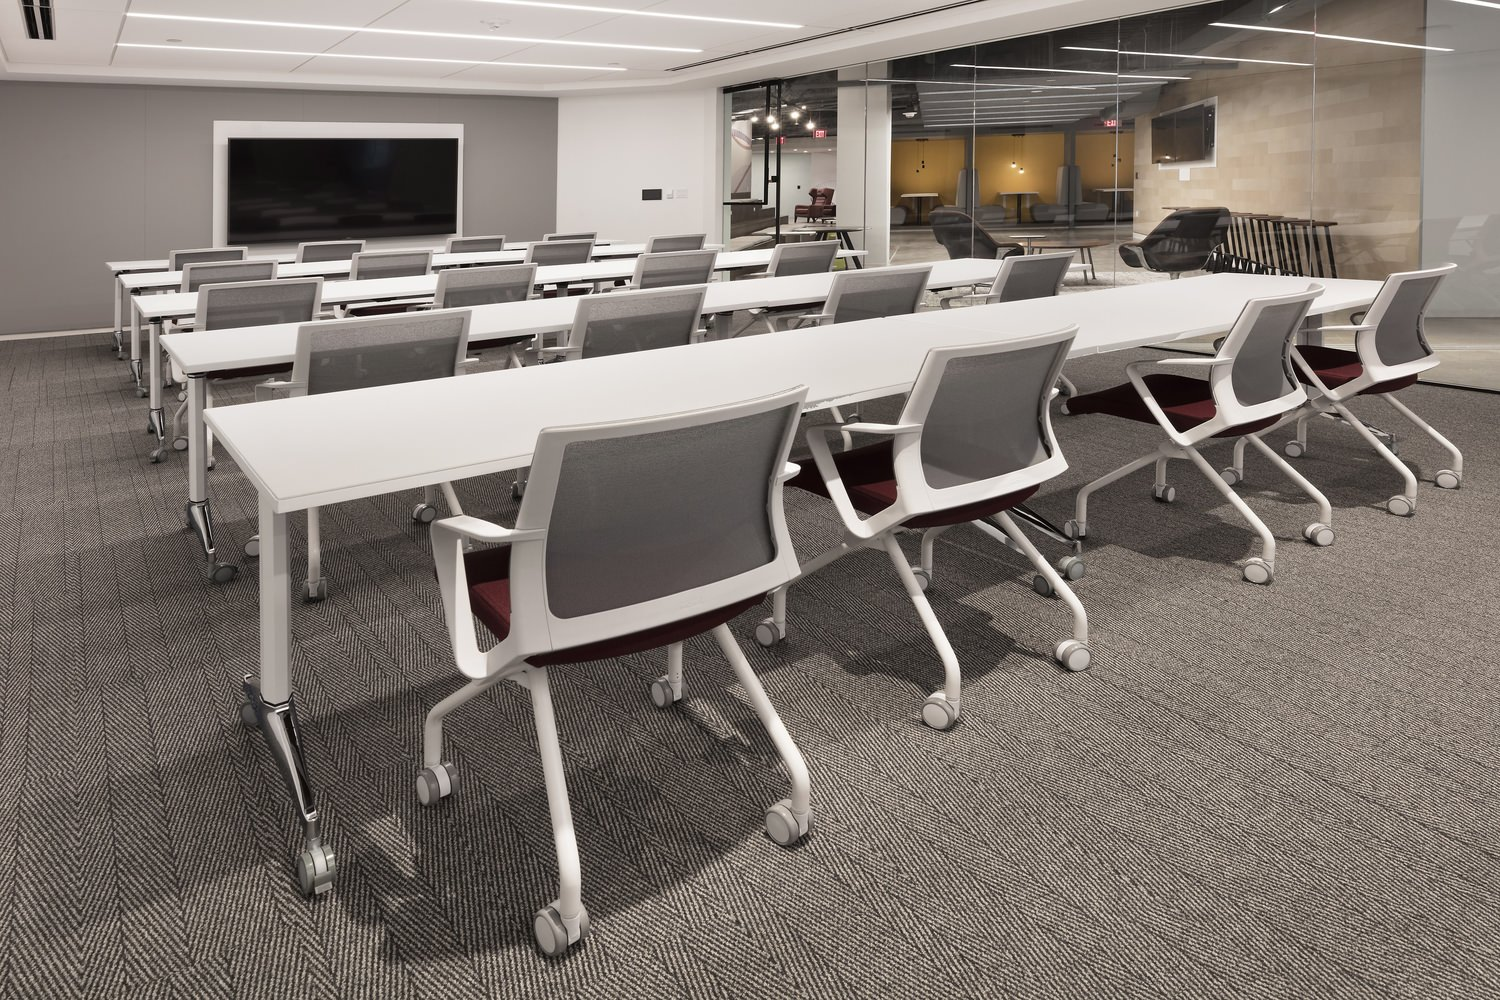 Rows of white tables with chairs inside of a room full of computers and other furniture.